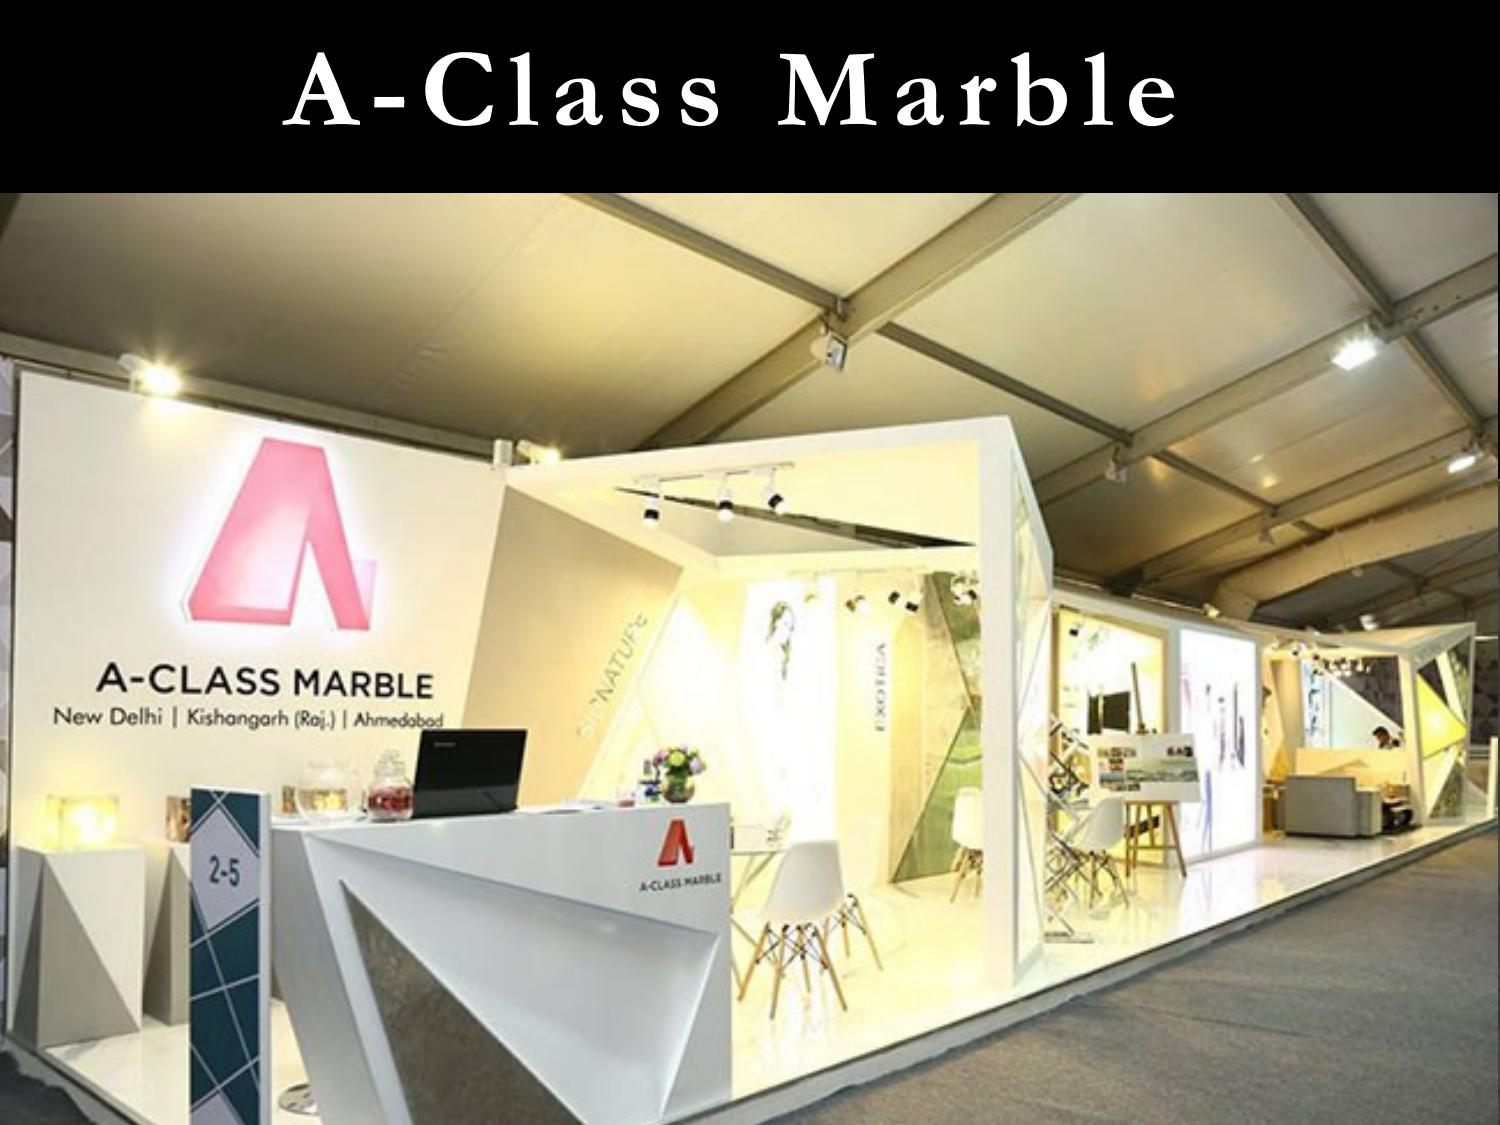 A-Class Marble - Leading Italian Marble Company by A-Class